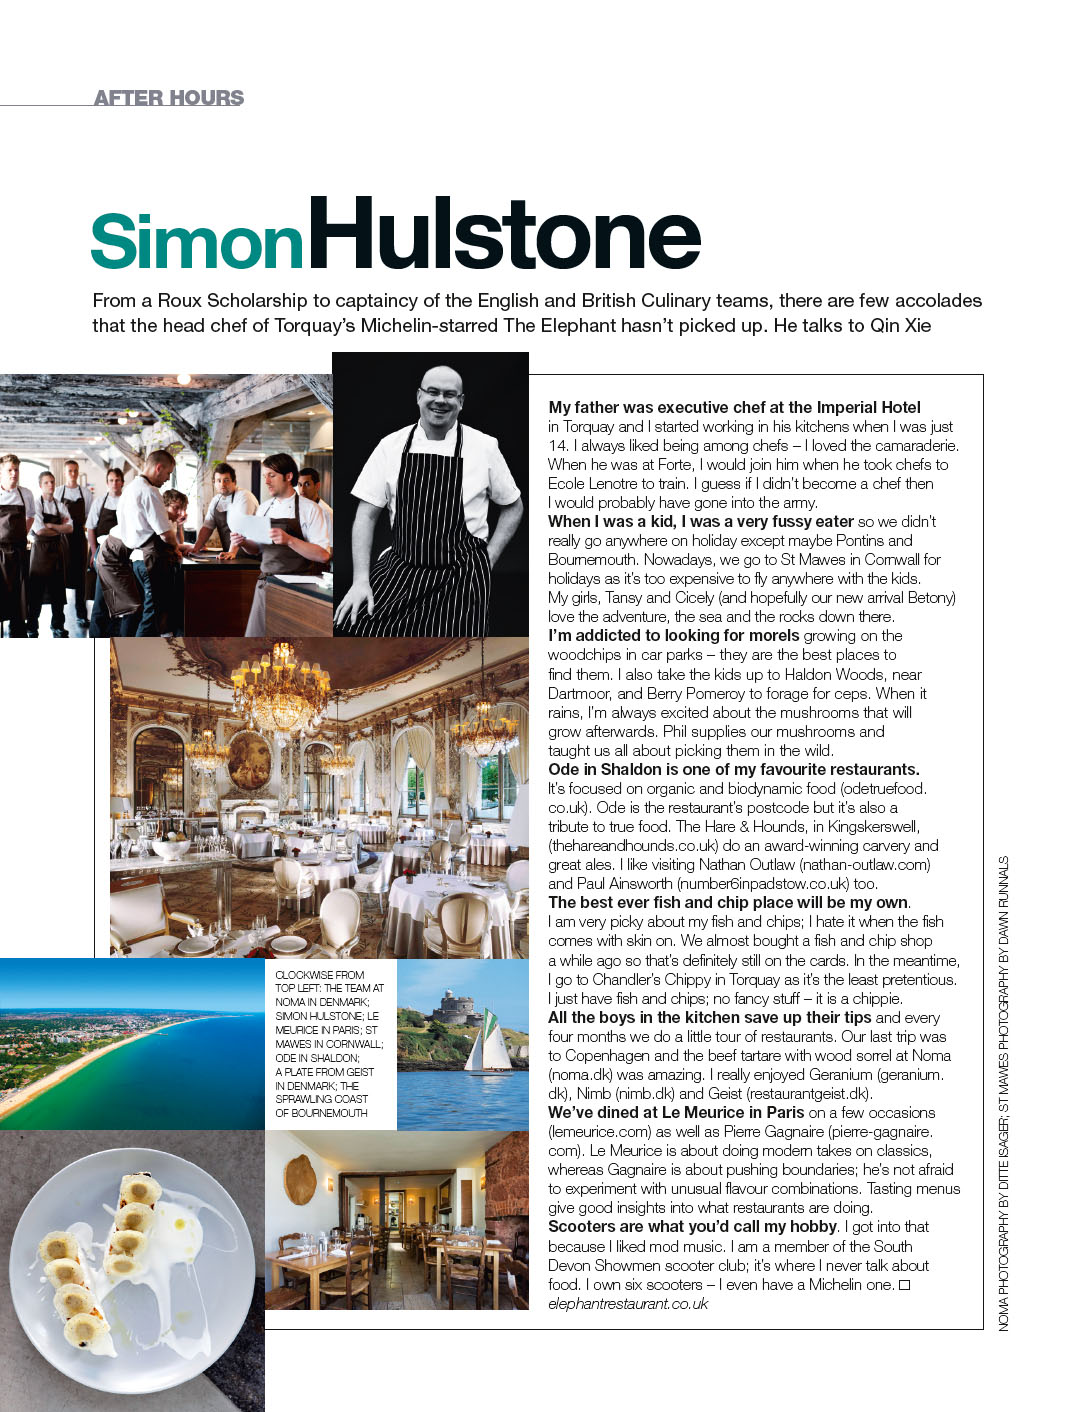 Simon Hulstone in Food and Travel